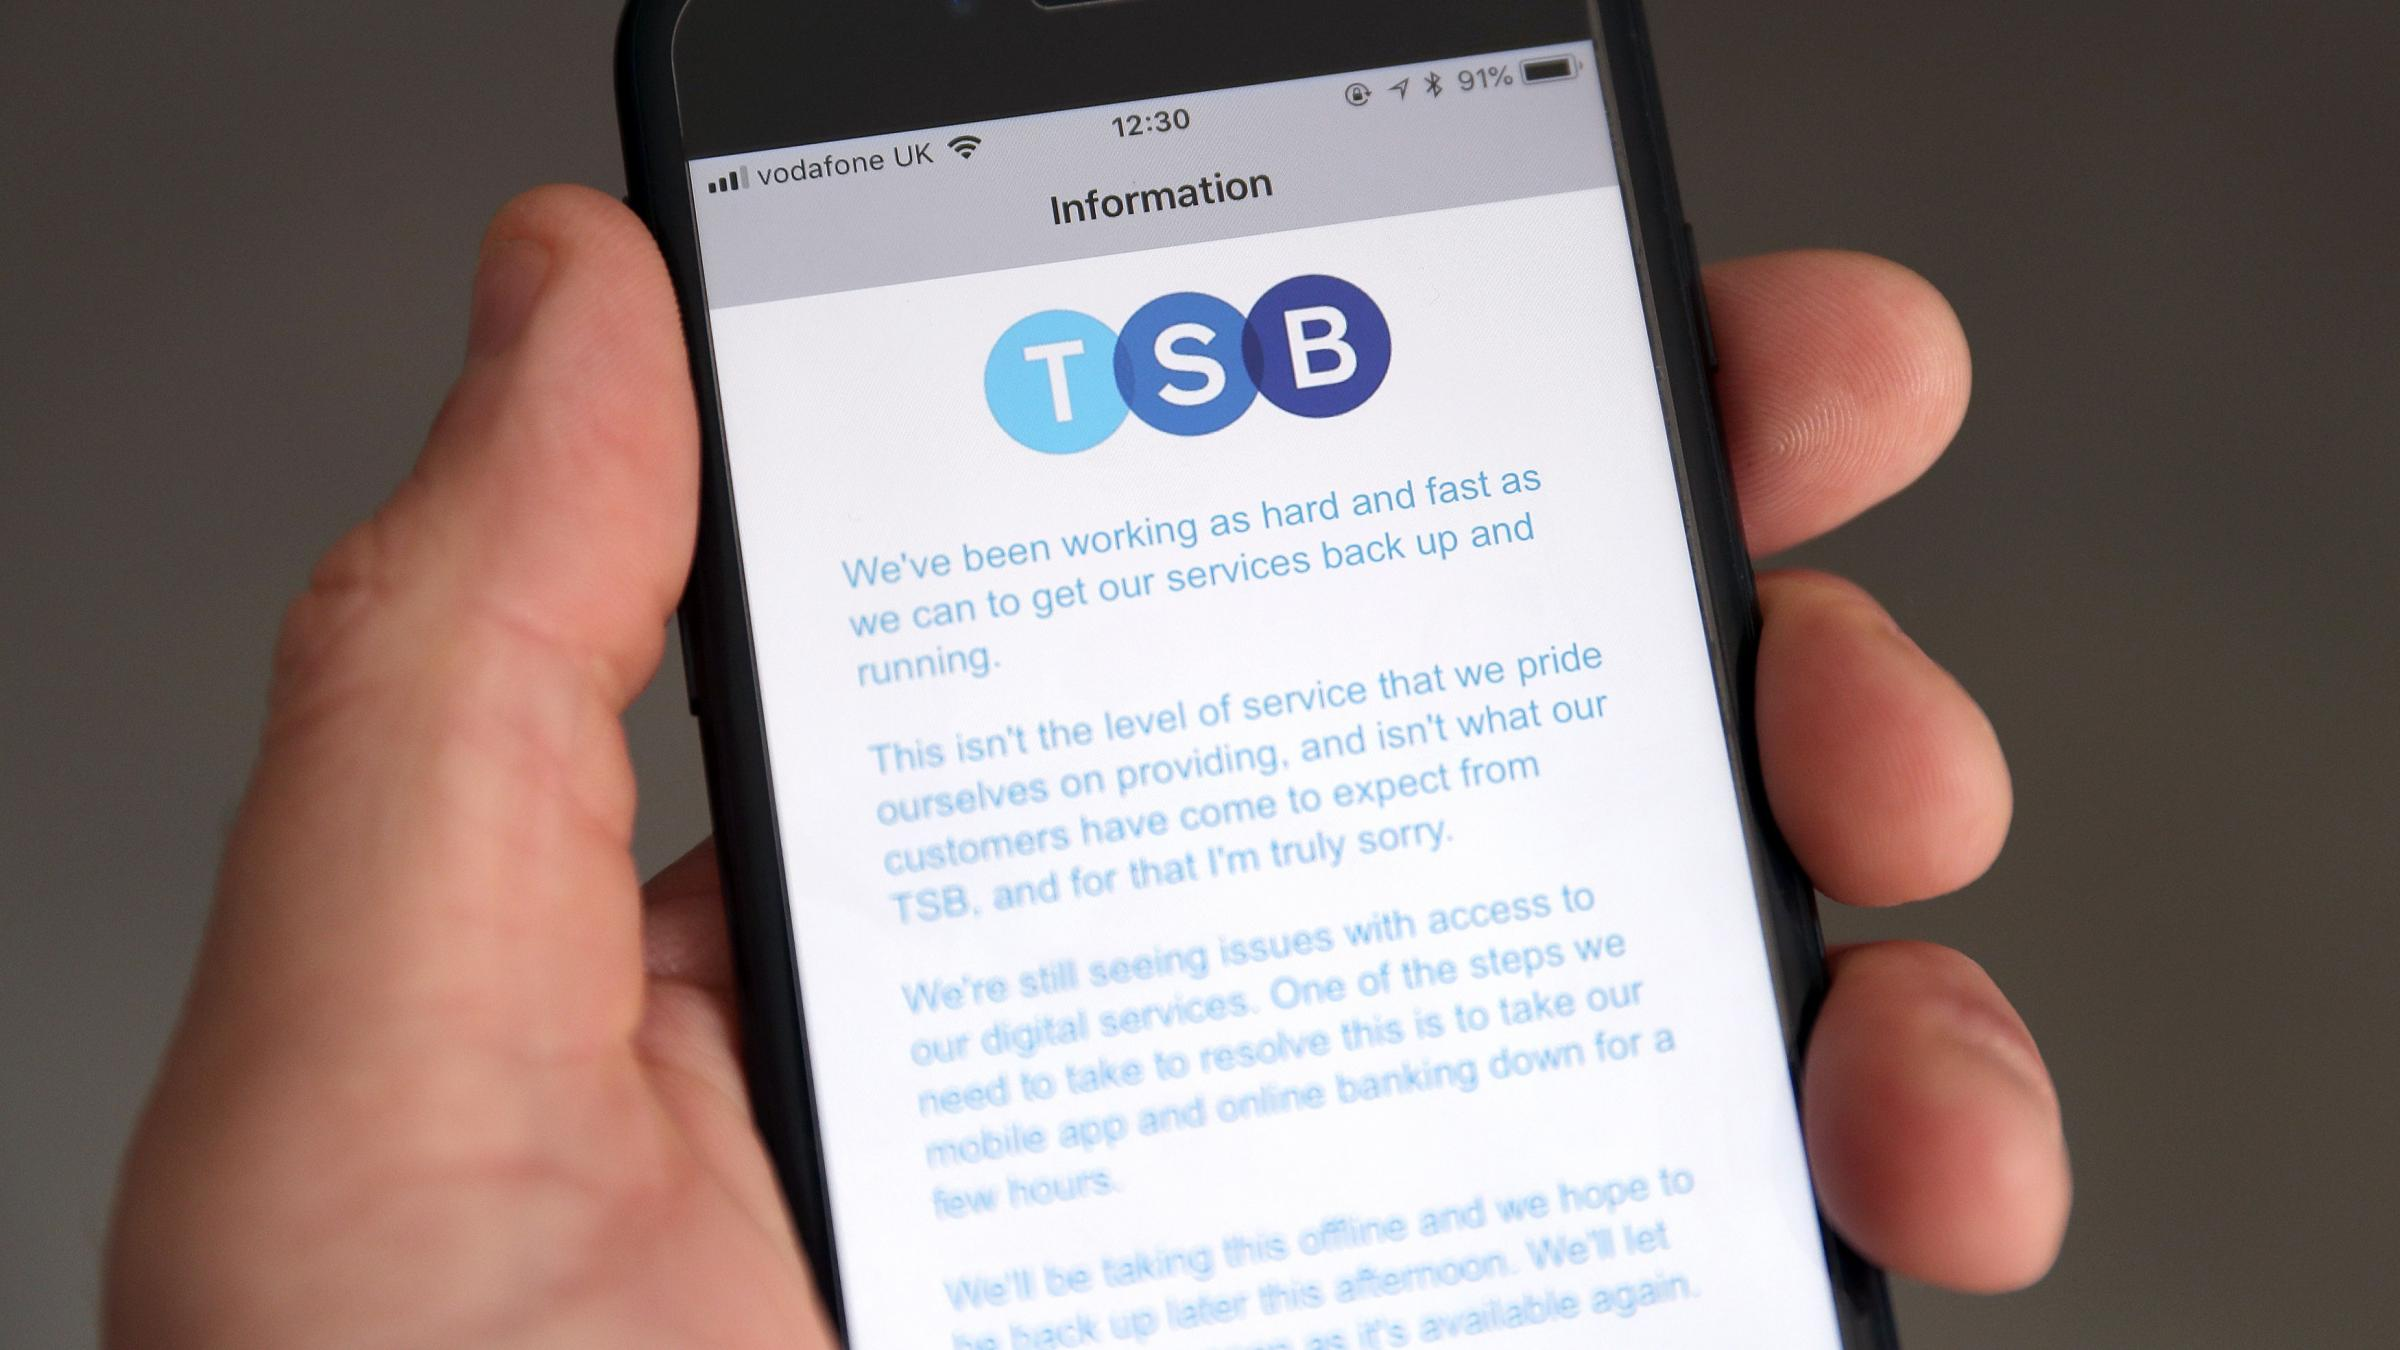 TSB internet banking operating at 50% capacity, says boss